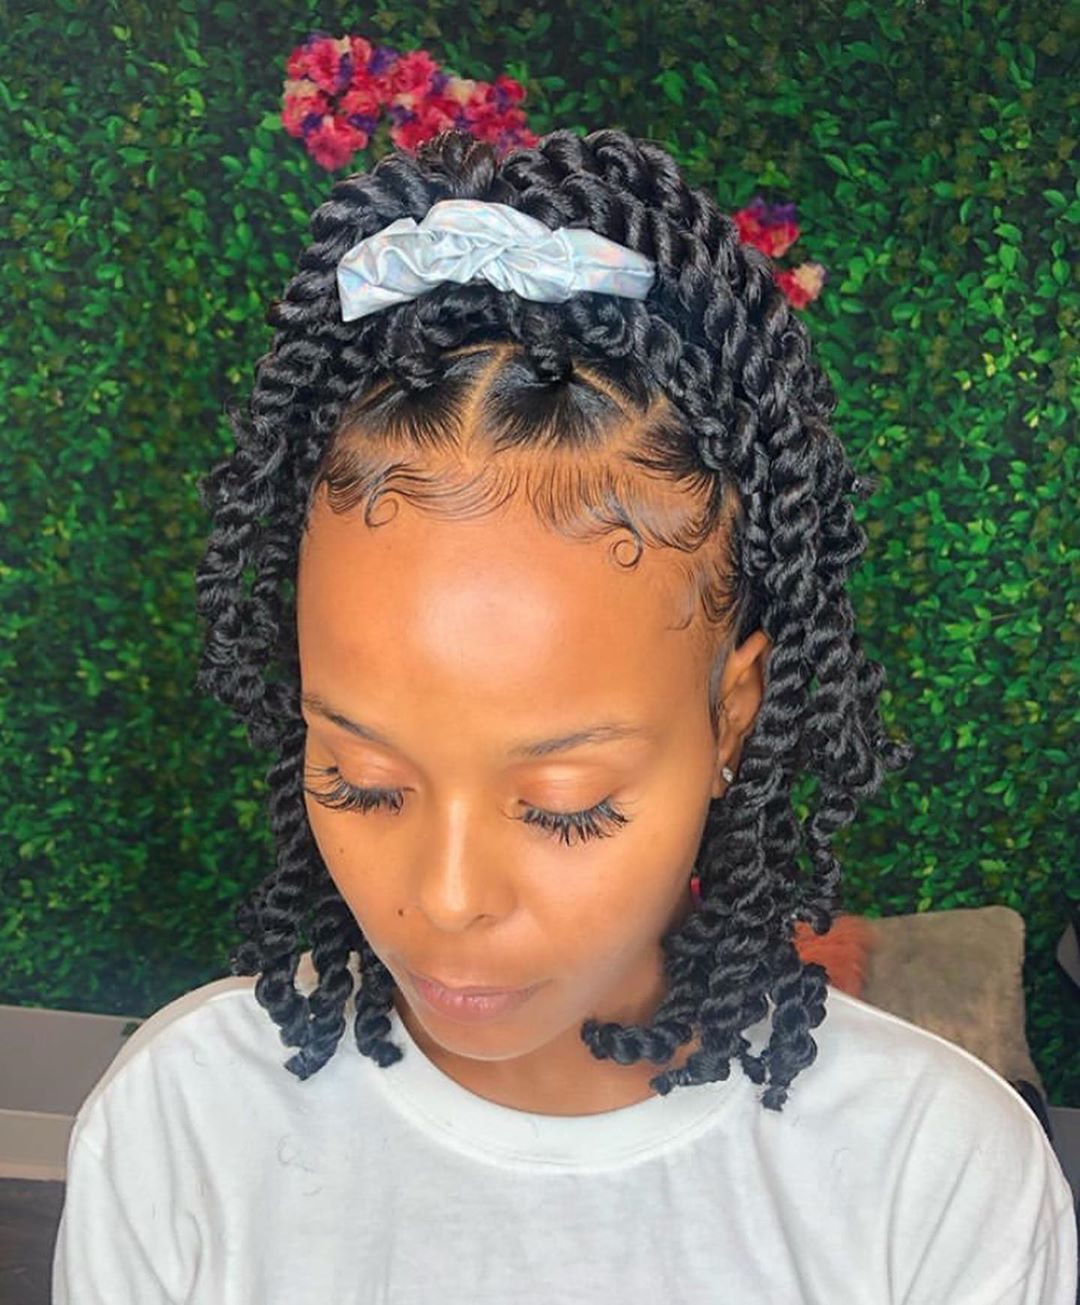 Beauty Depot S Instagram Profile Post Euphoricstylez Short Passion Twists For Su In 2020 Natural Hair Styles Easy Natural Hair Styles Black Girl Braided Hairstyles